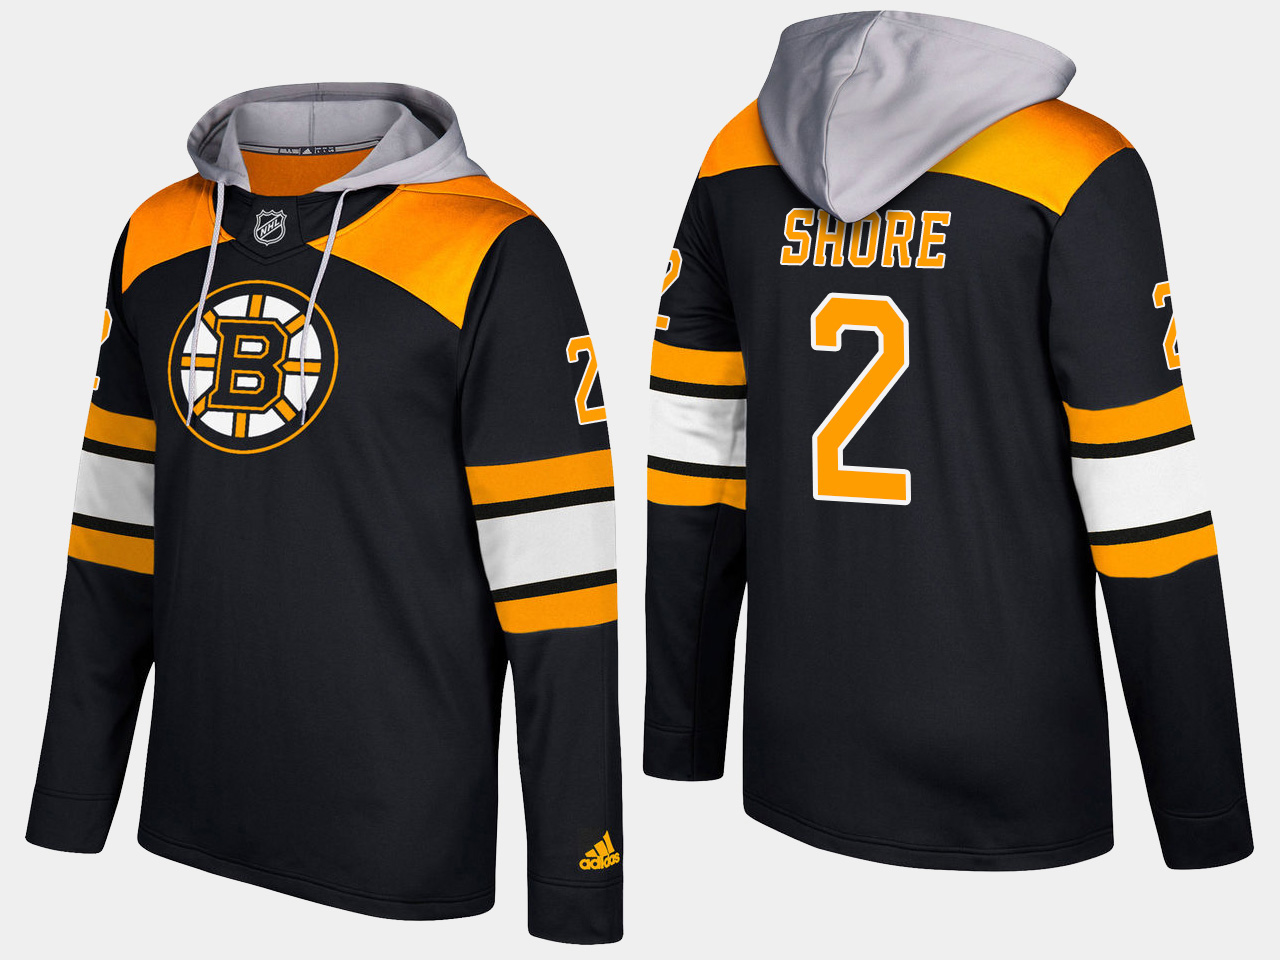 Men NHL Boston bruins retired 2 eddie shore black hoodie